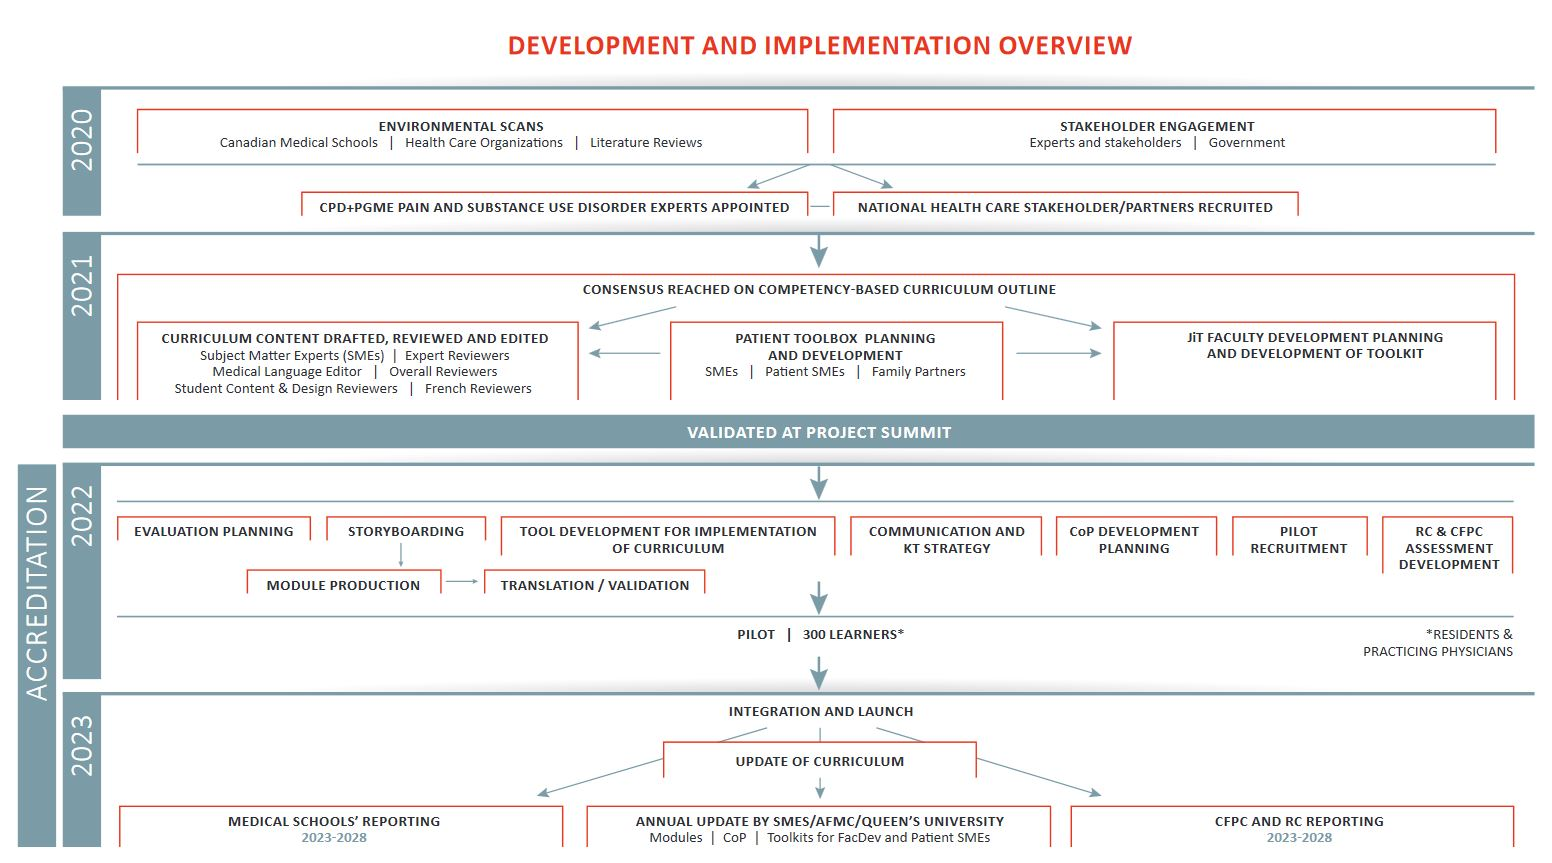 Development and Implementation Overview